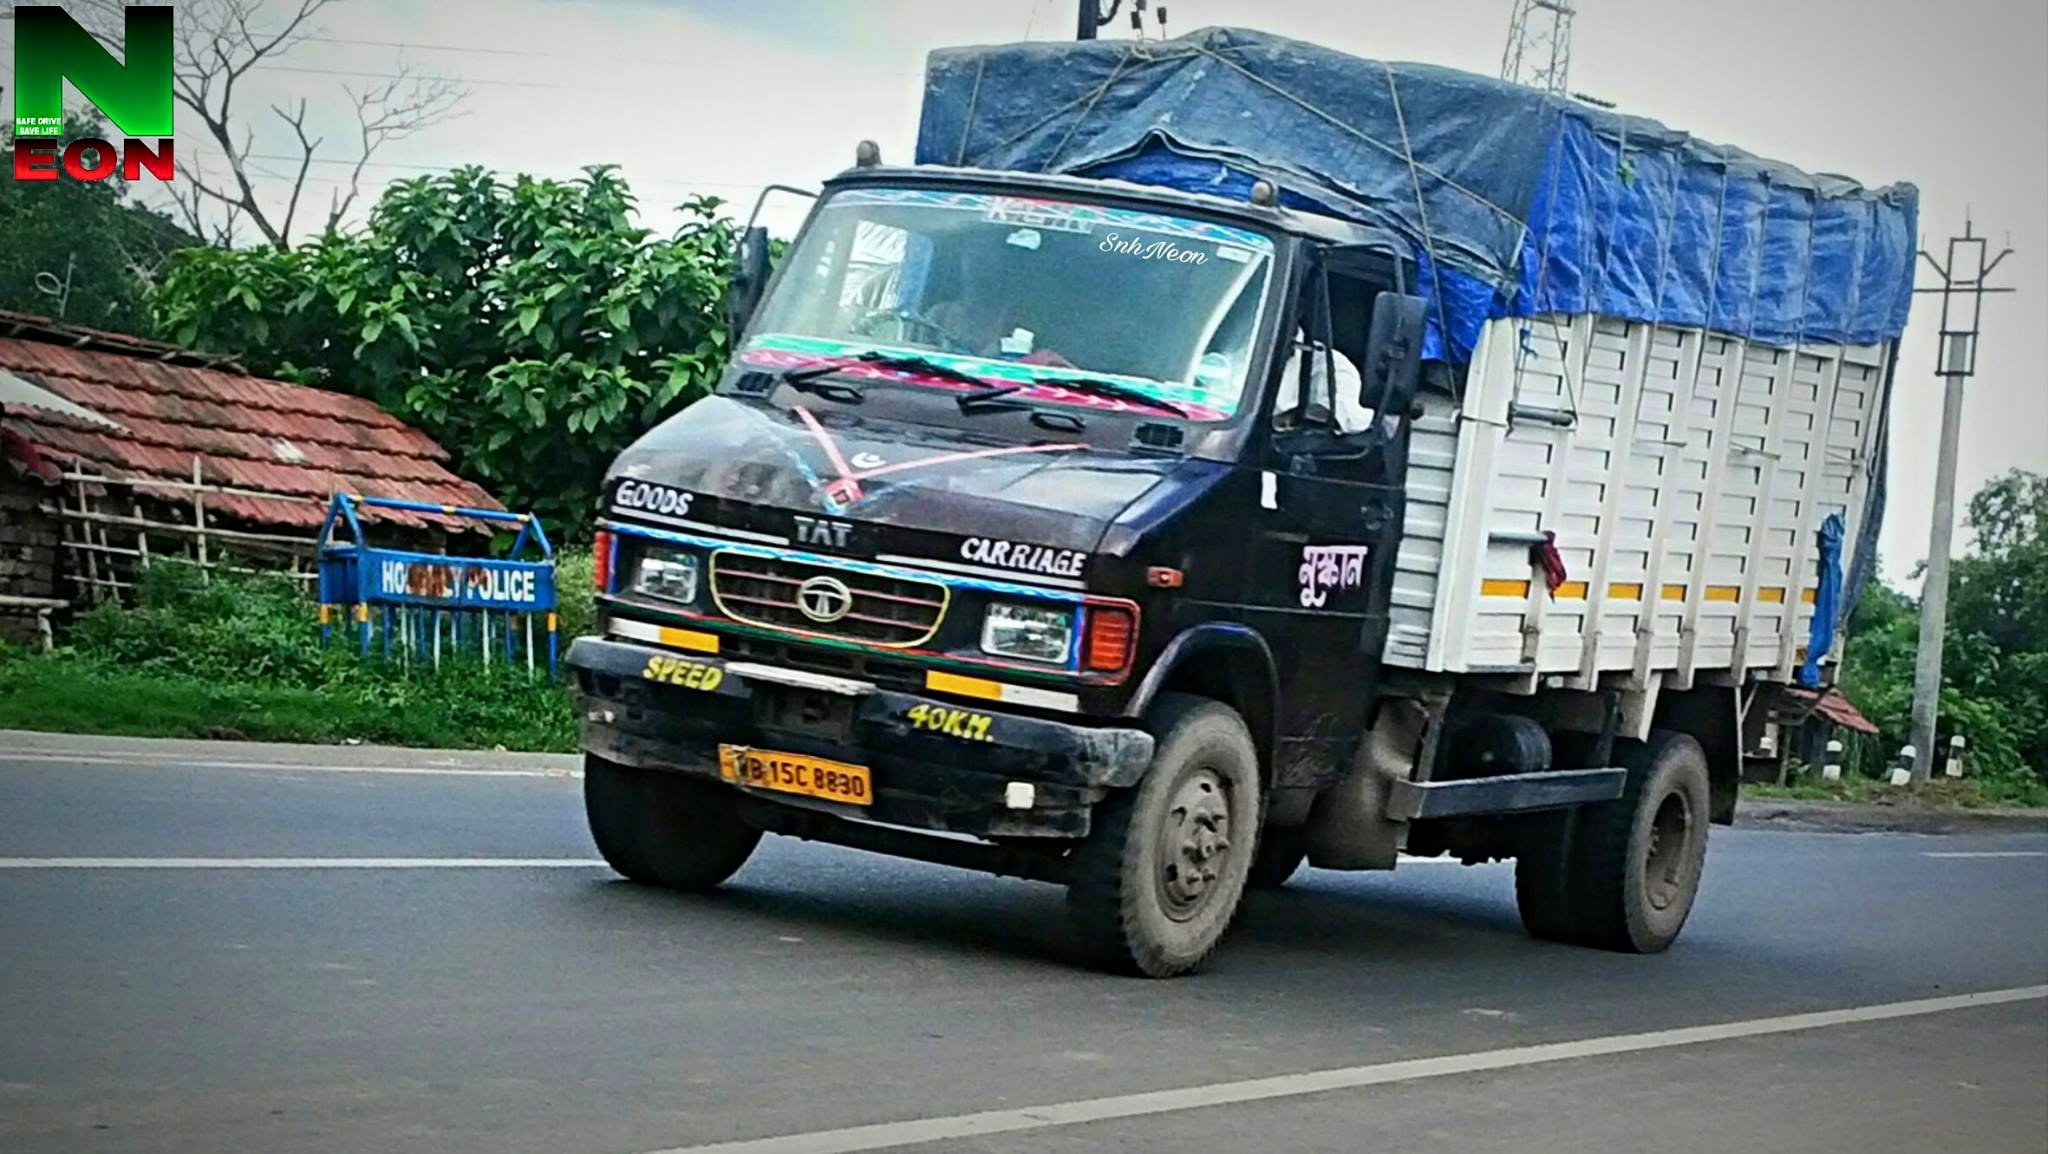 TATA-SFC-709-Hooghly-west-bengal